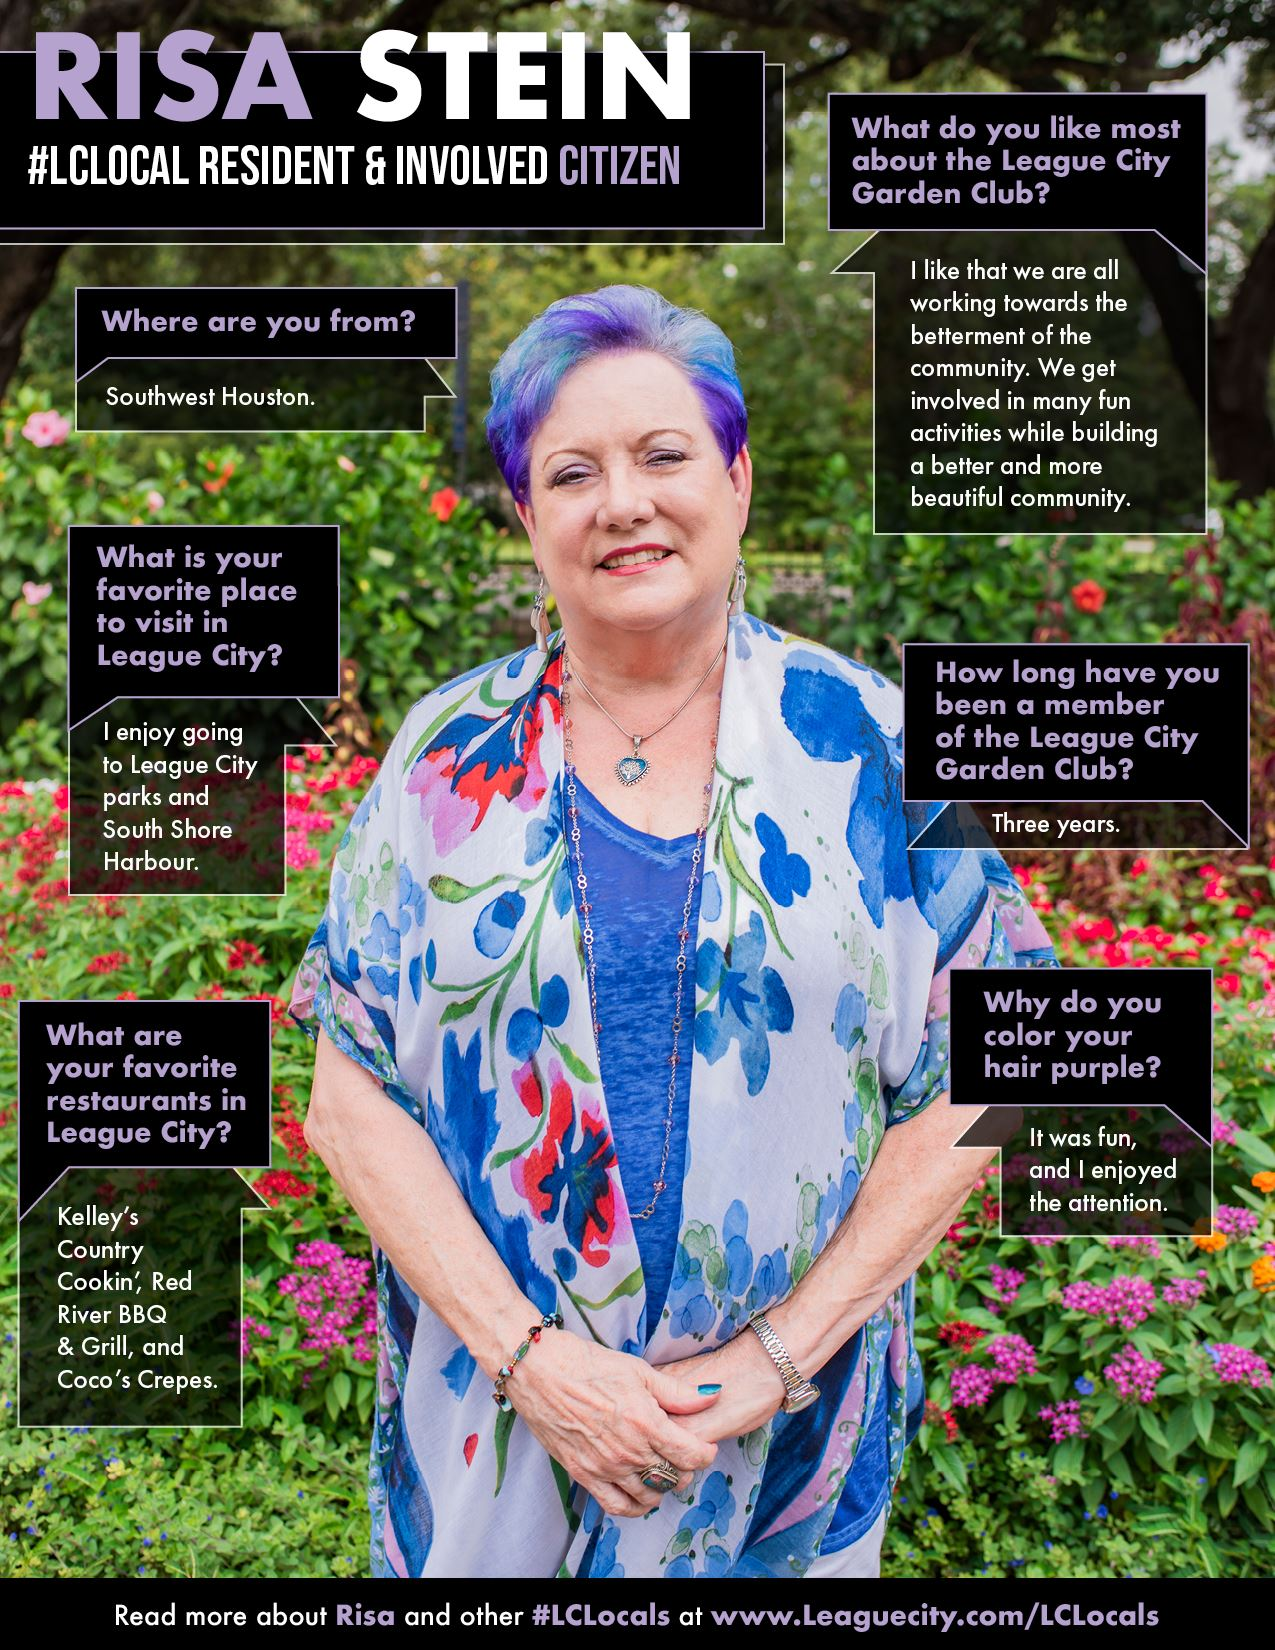 blue haired woman posing in front of garden